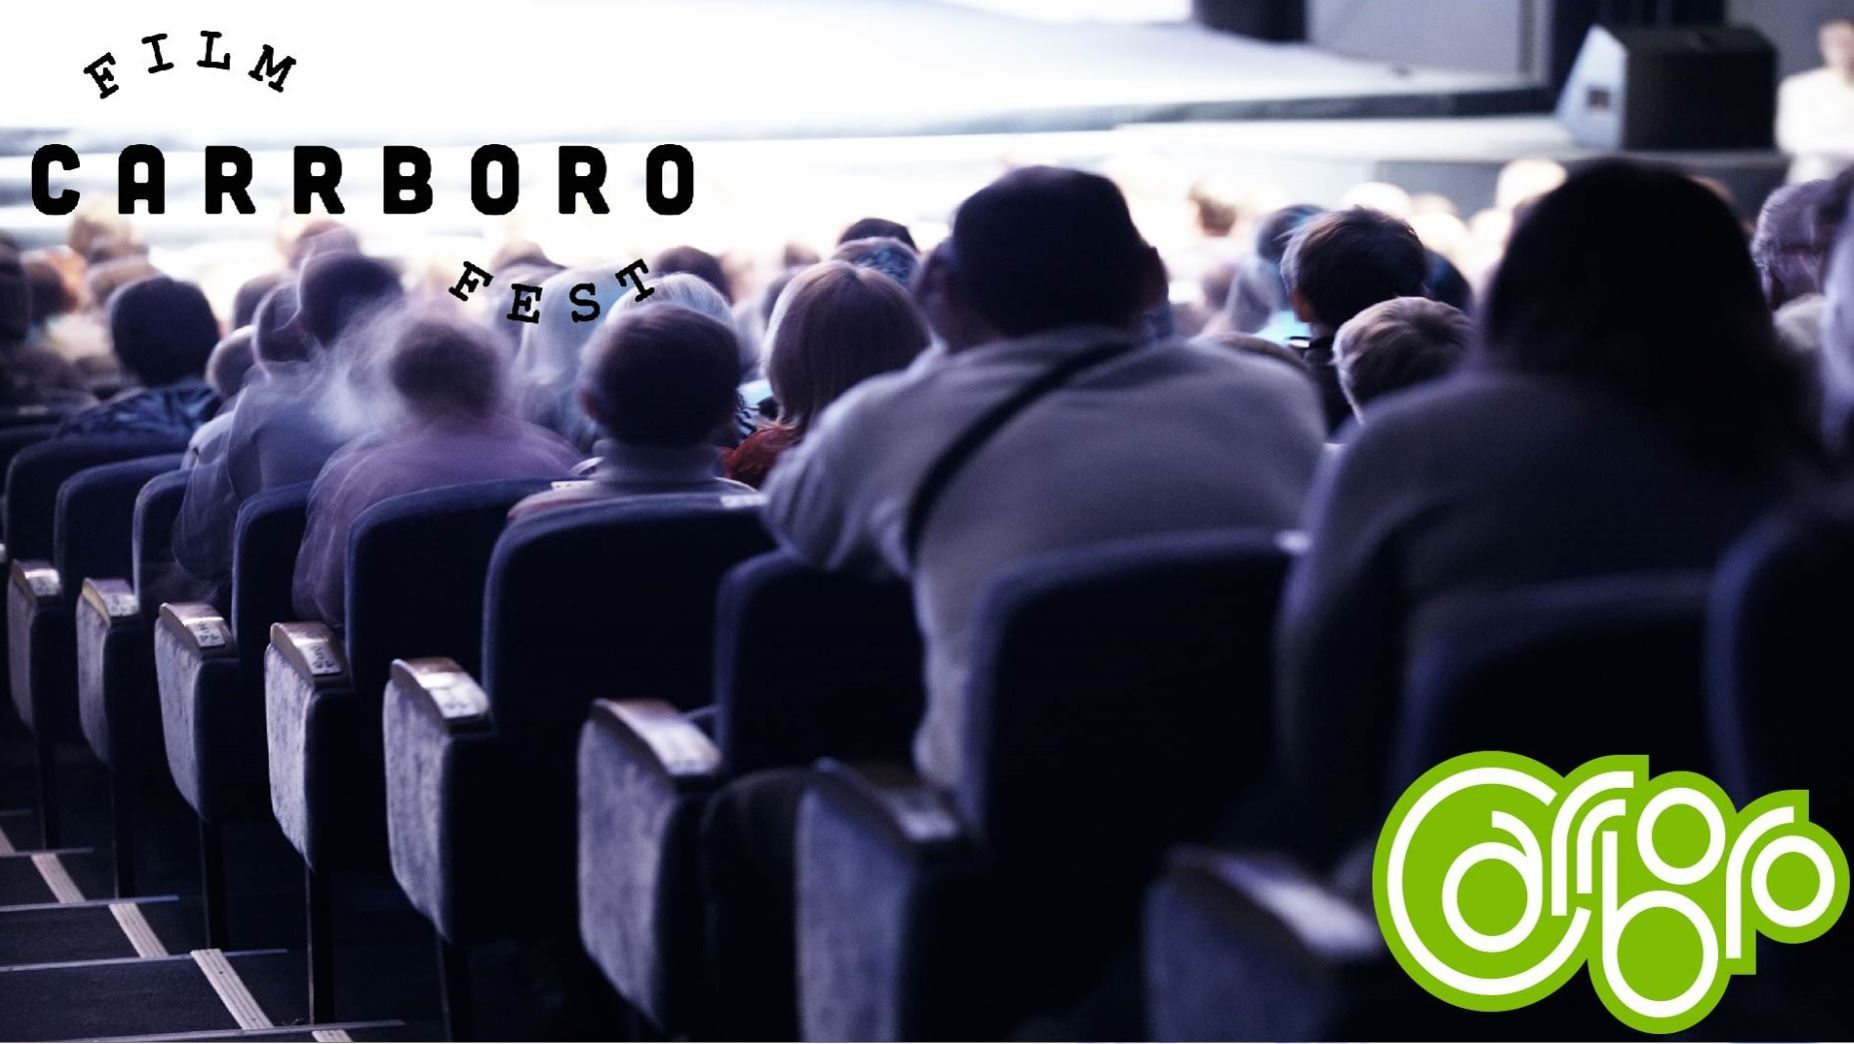 Carrboro Film Festival 2019